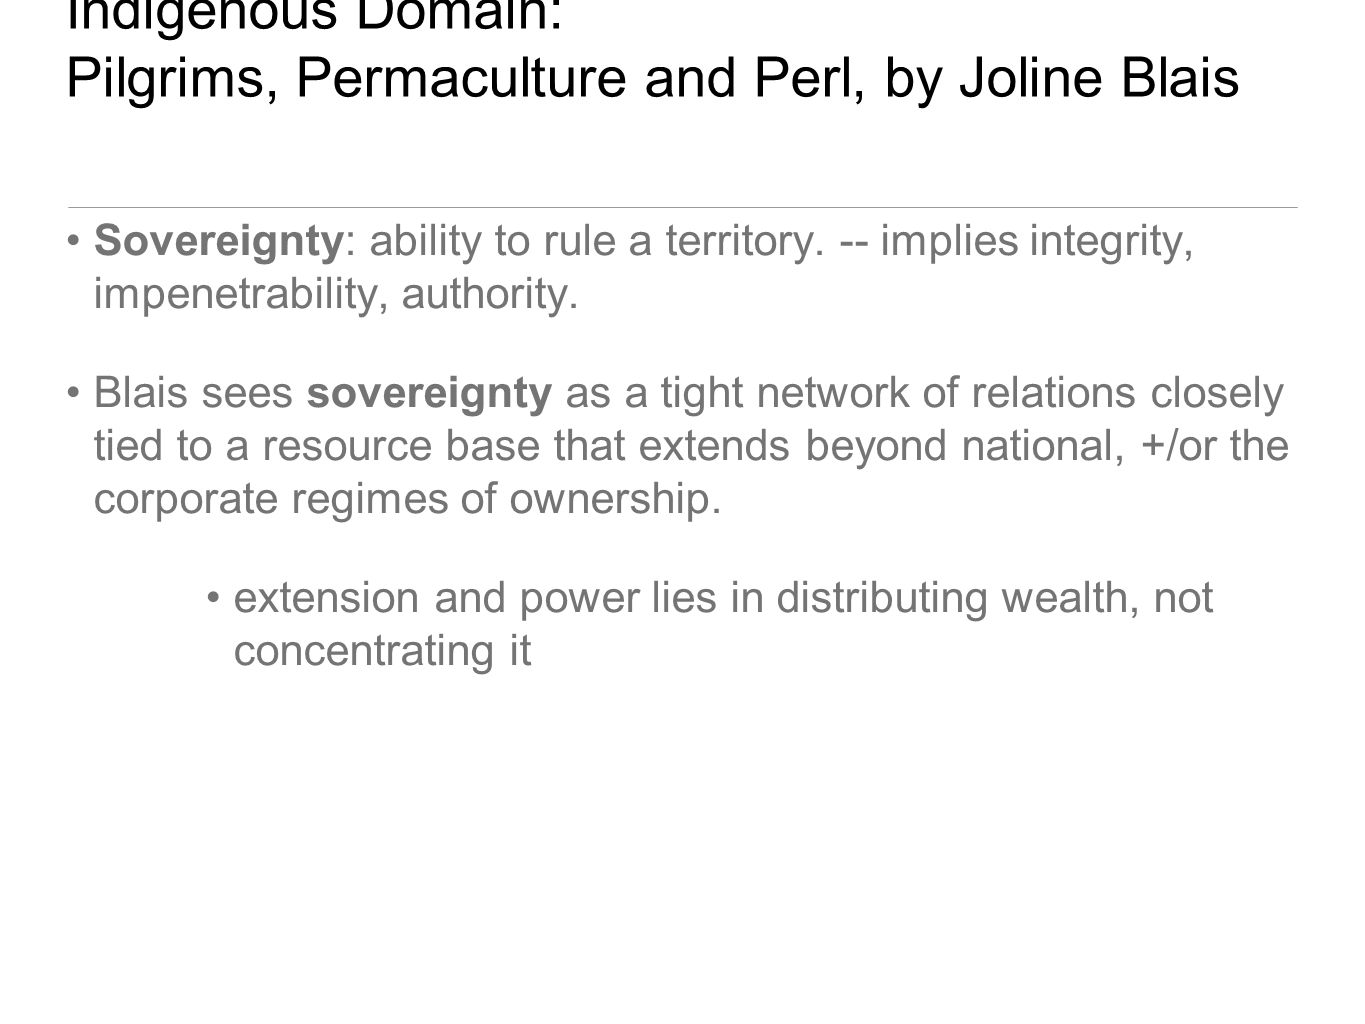 Indigenous Domain: Pilgrims, Permaculture and Perl, by Joline Blais Sovereignty: ability to rule a territory. -- implies integrity, impenetrability, a